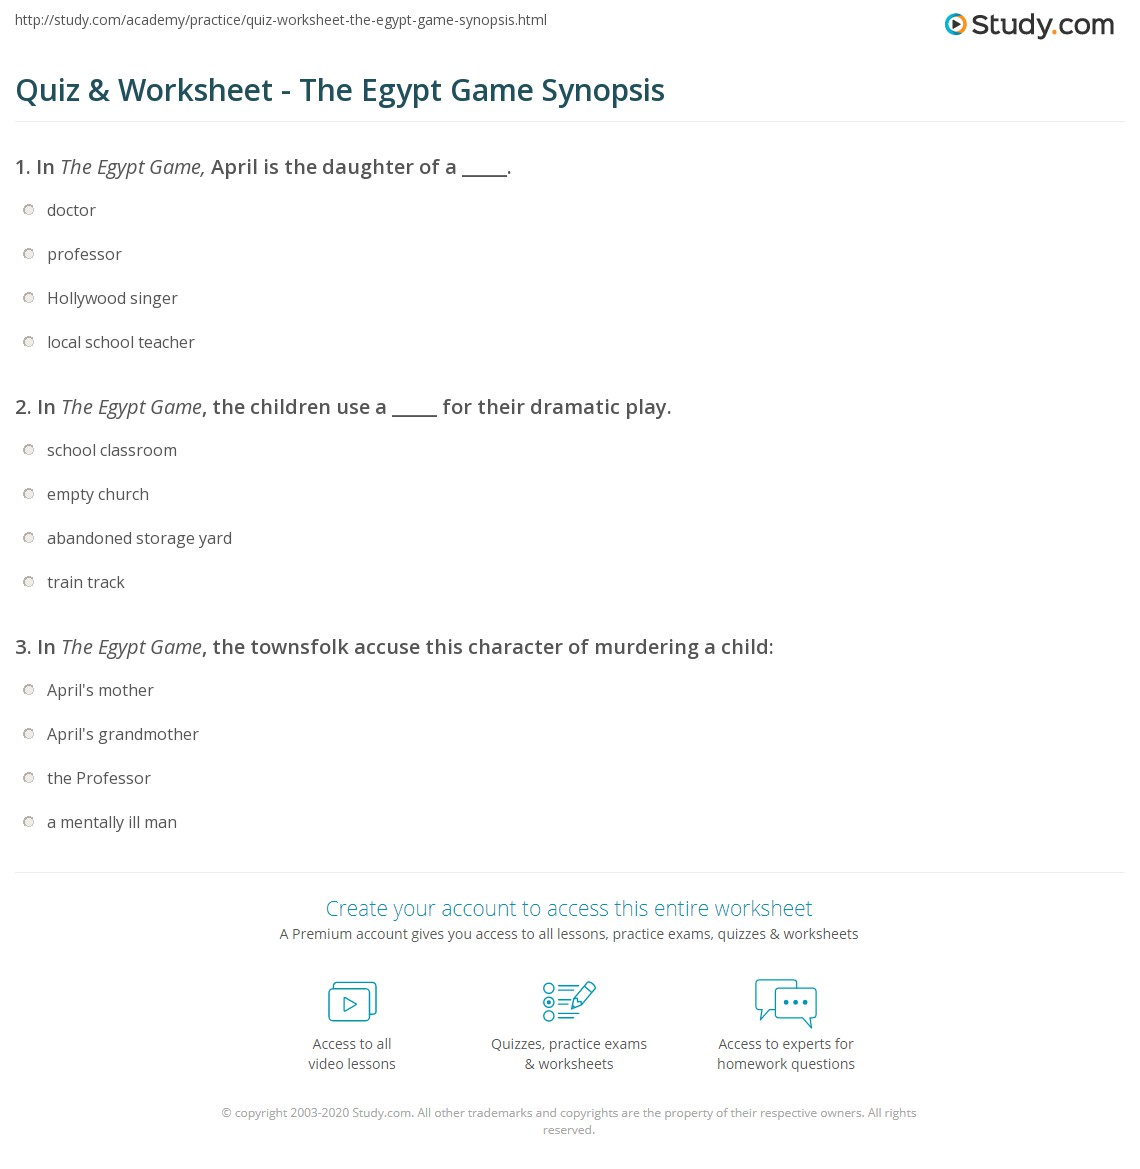 Quiz Worksheet The Egypt Game Synopsis Study Com